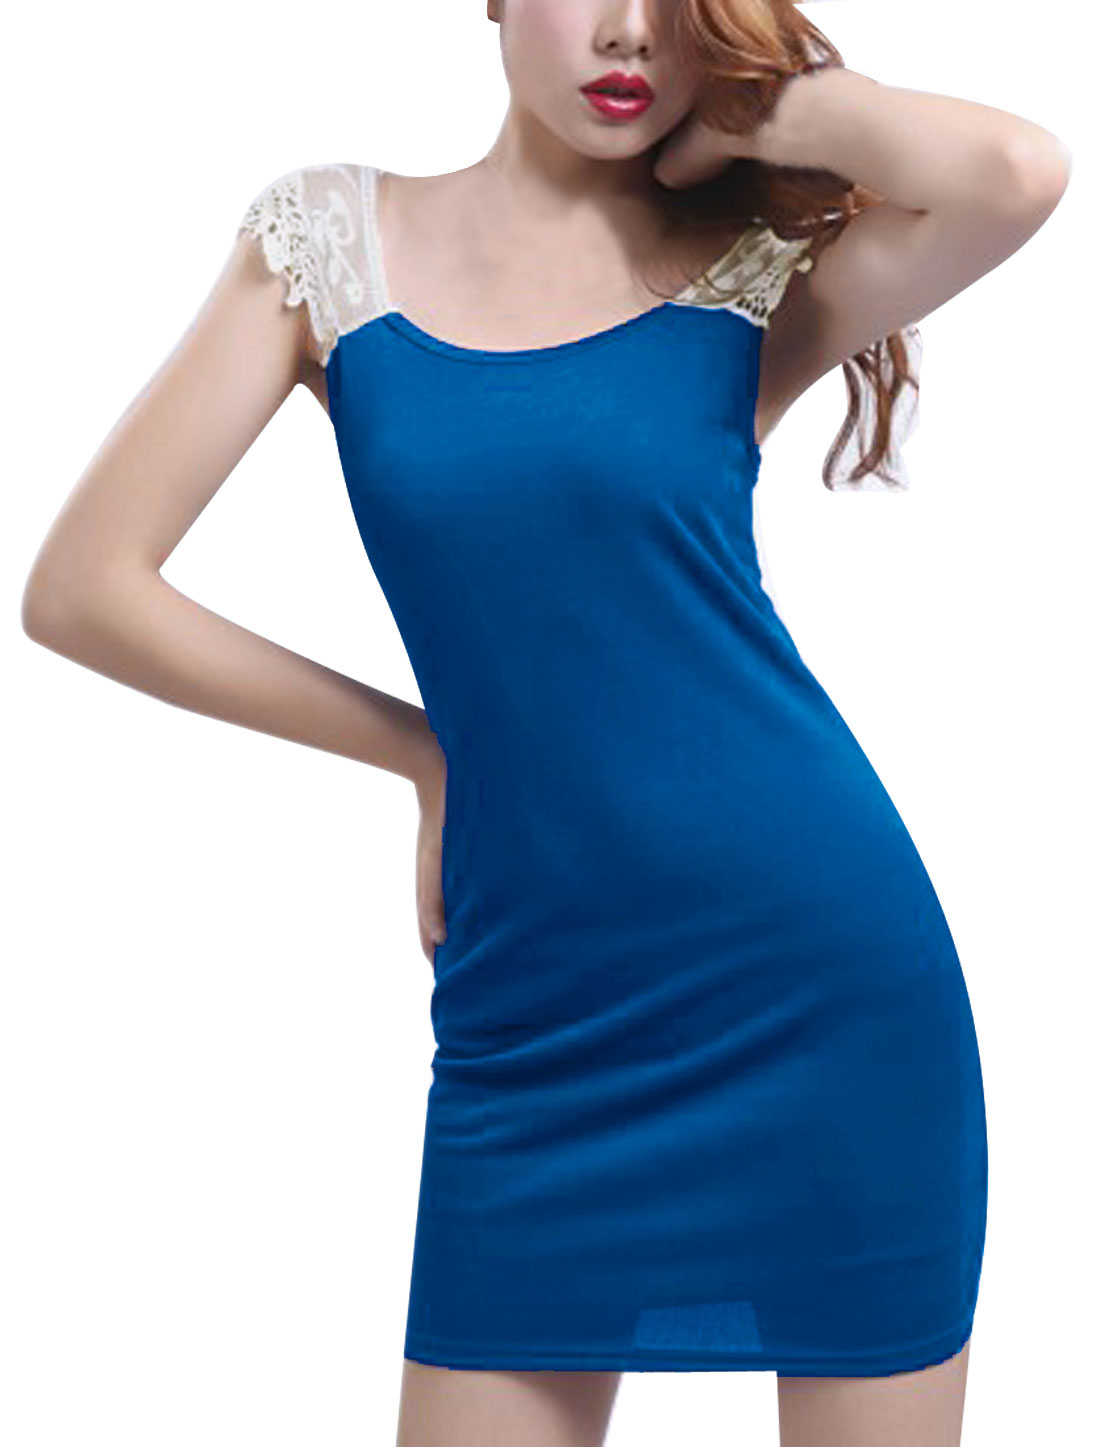 Ladies Stretchy Crochet Lace Panel Blue Mini Dress M